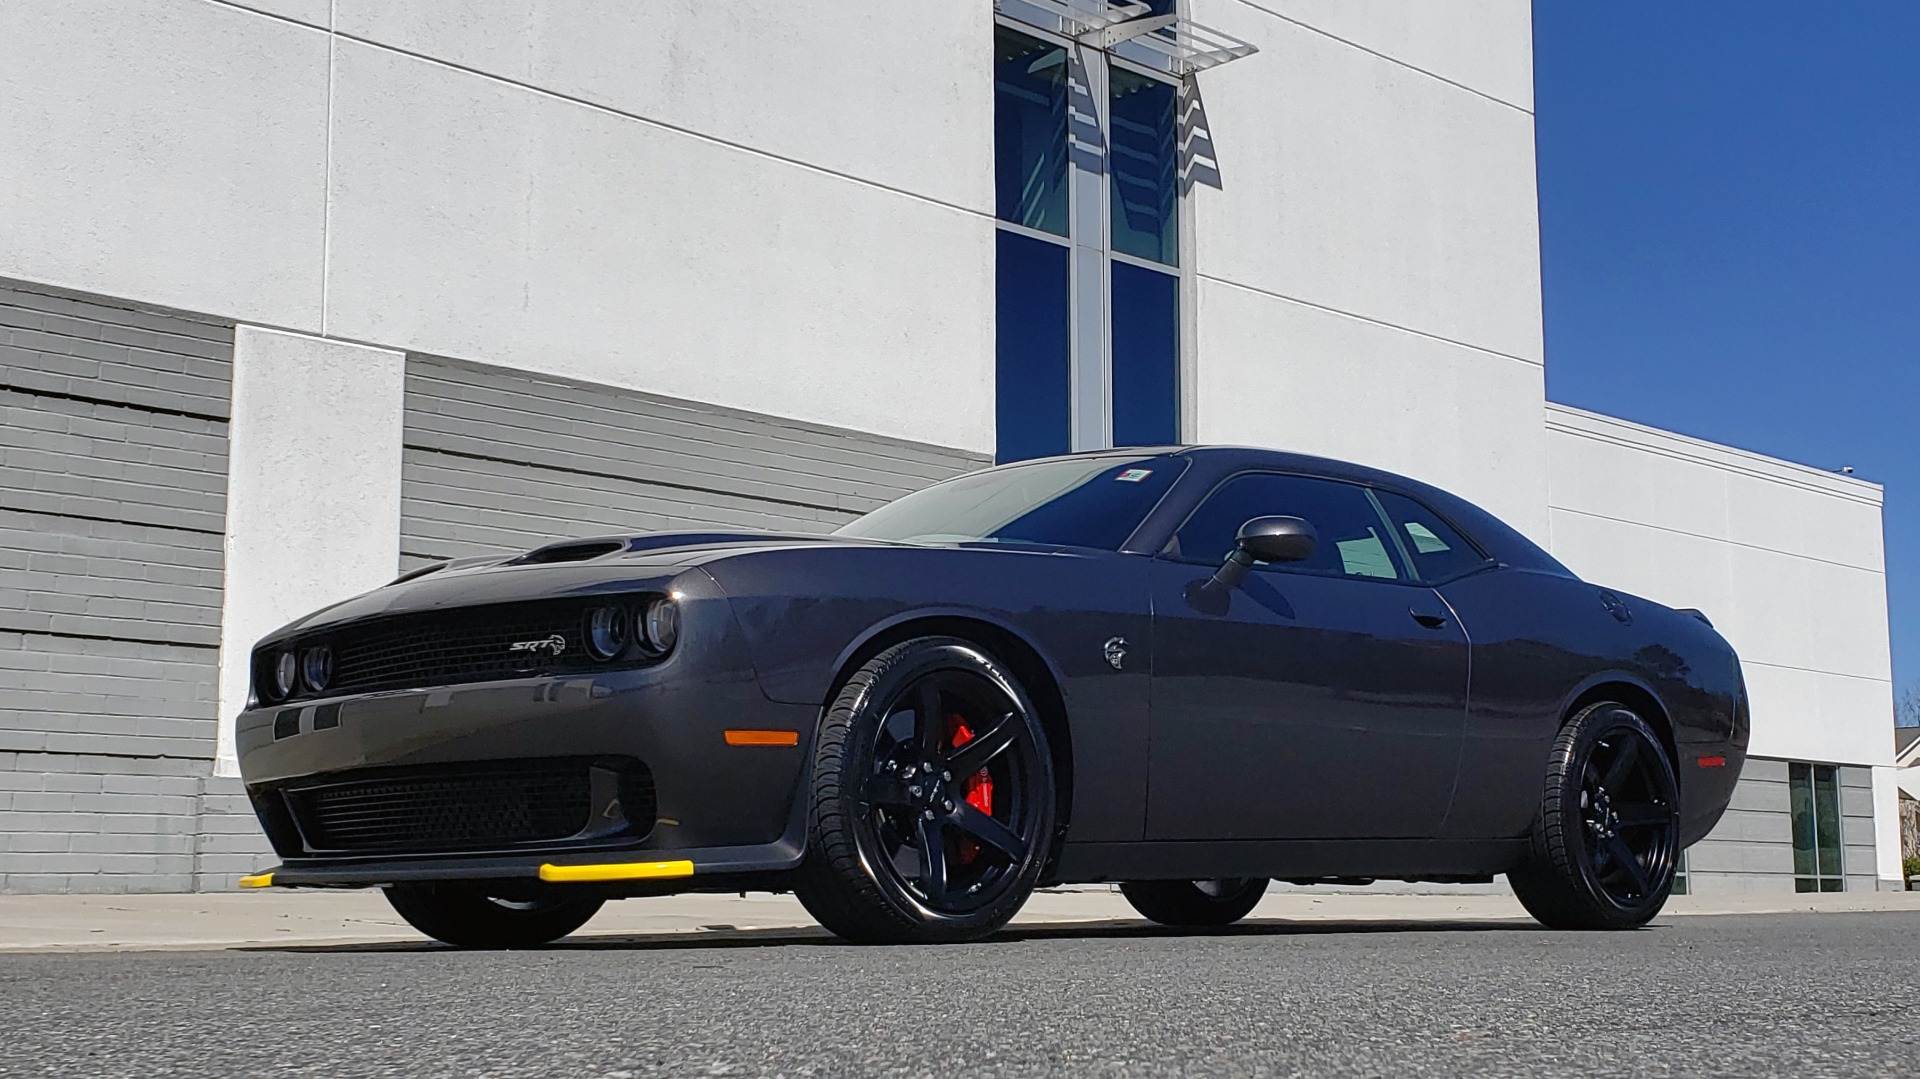 Used 2020 Dodge CHALLENGER SRT HELLCAT (717HP) / NAV / AUTO / CLOTH / REARVIEW / LOW MILES for sale Sold at Formula Imports in Charlotte NC 28227 2